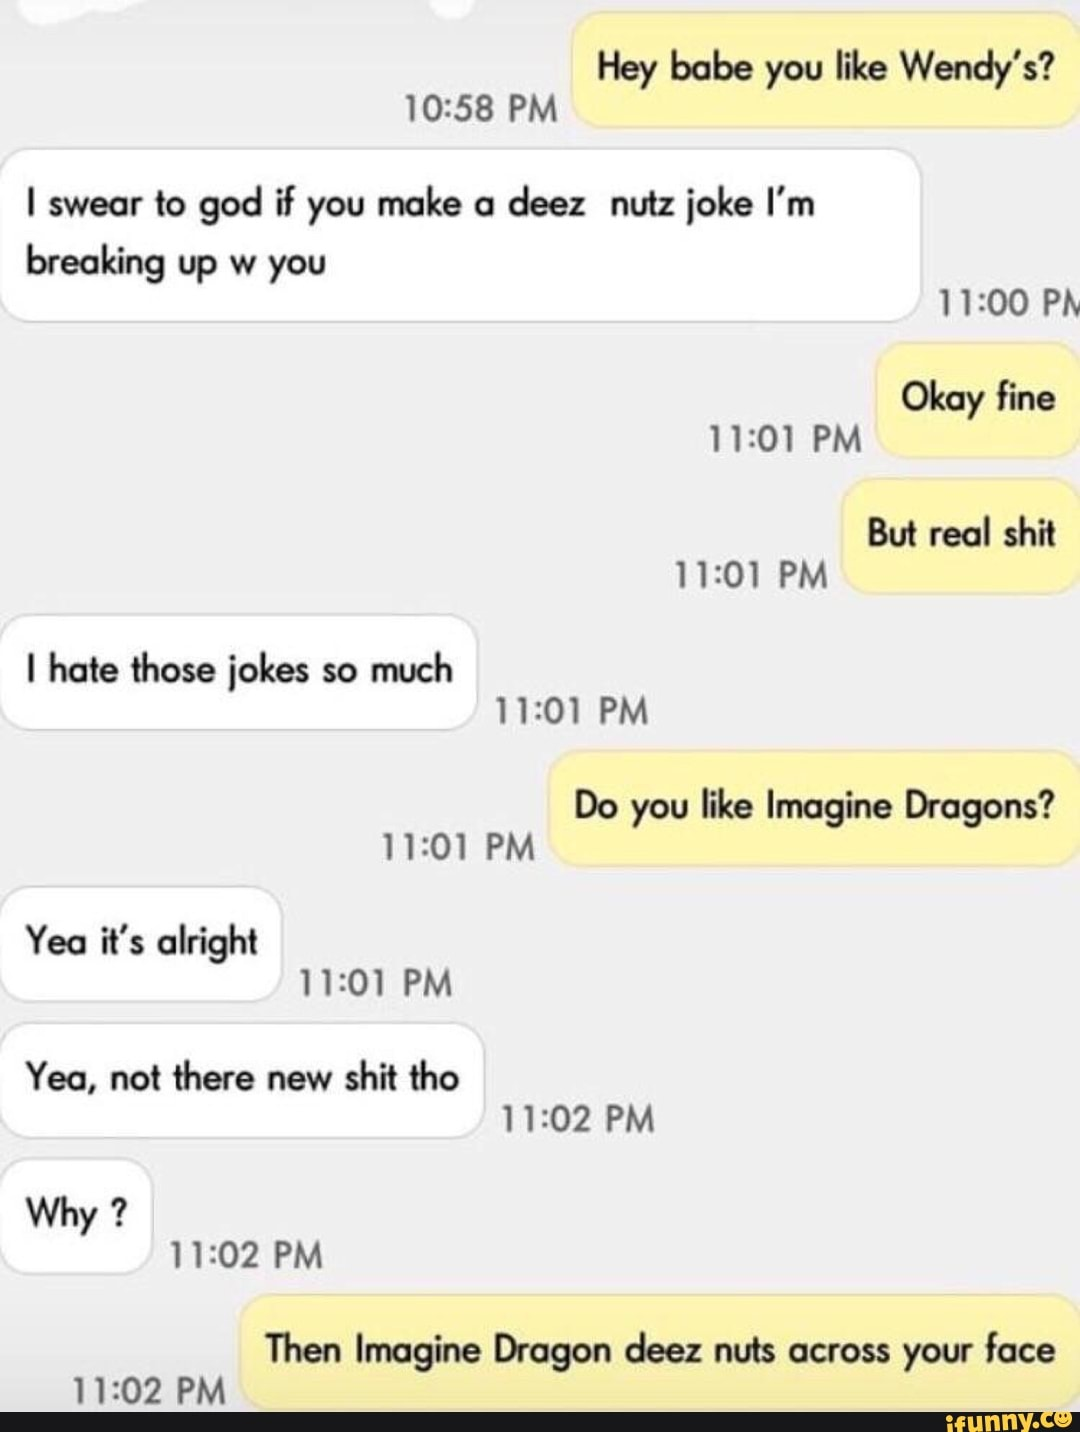 Do You Like Dragons Joke : dragons, Wendy's?, Swear, Breaking, Alright, 11:01, There